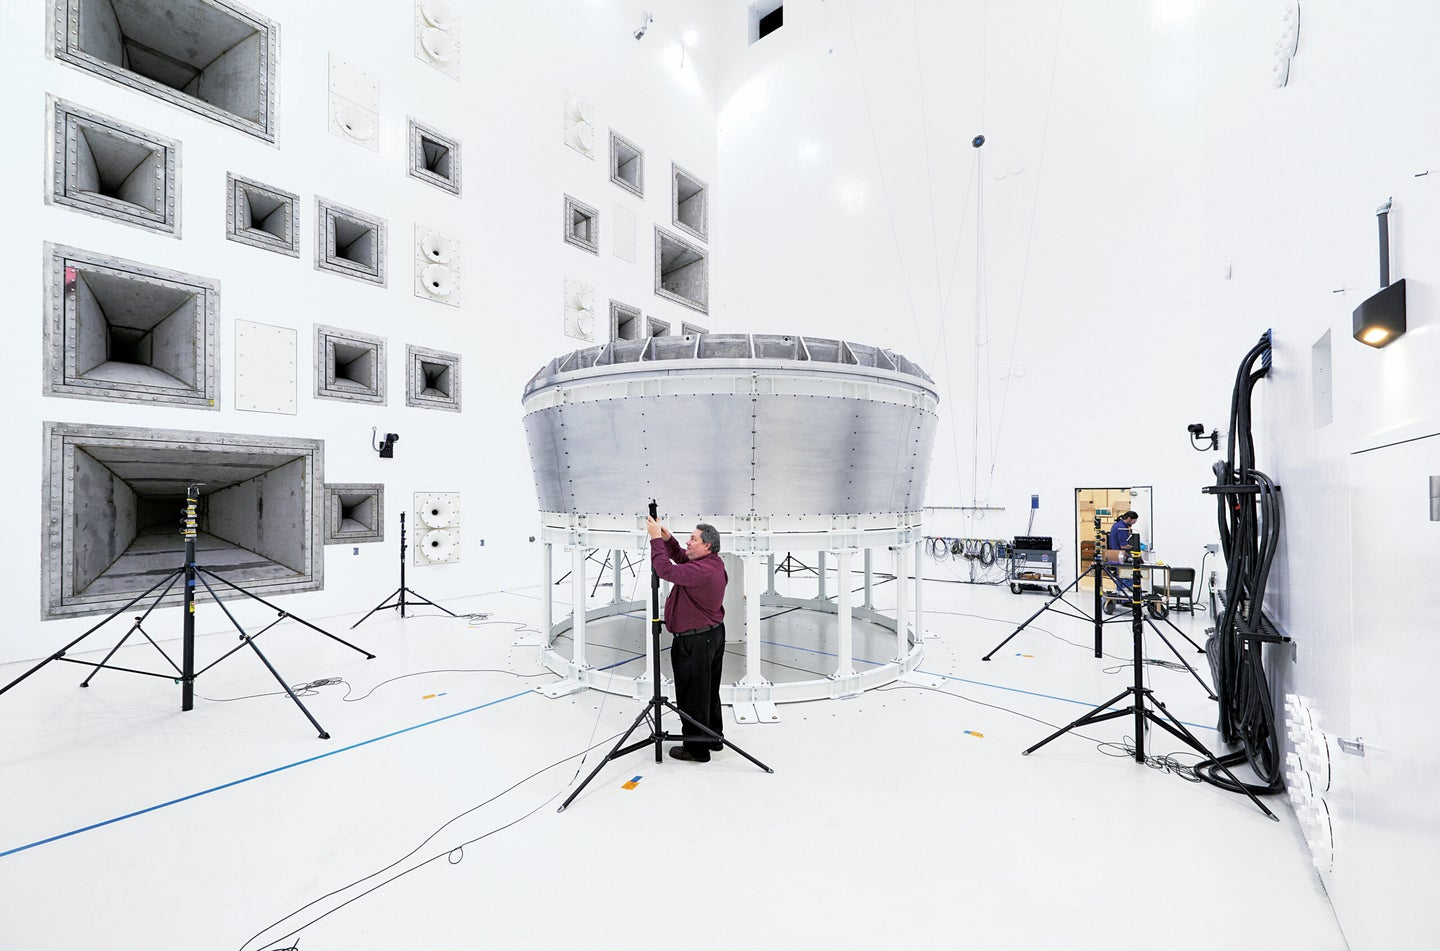 acoustic testing chamber